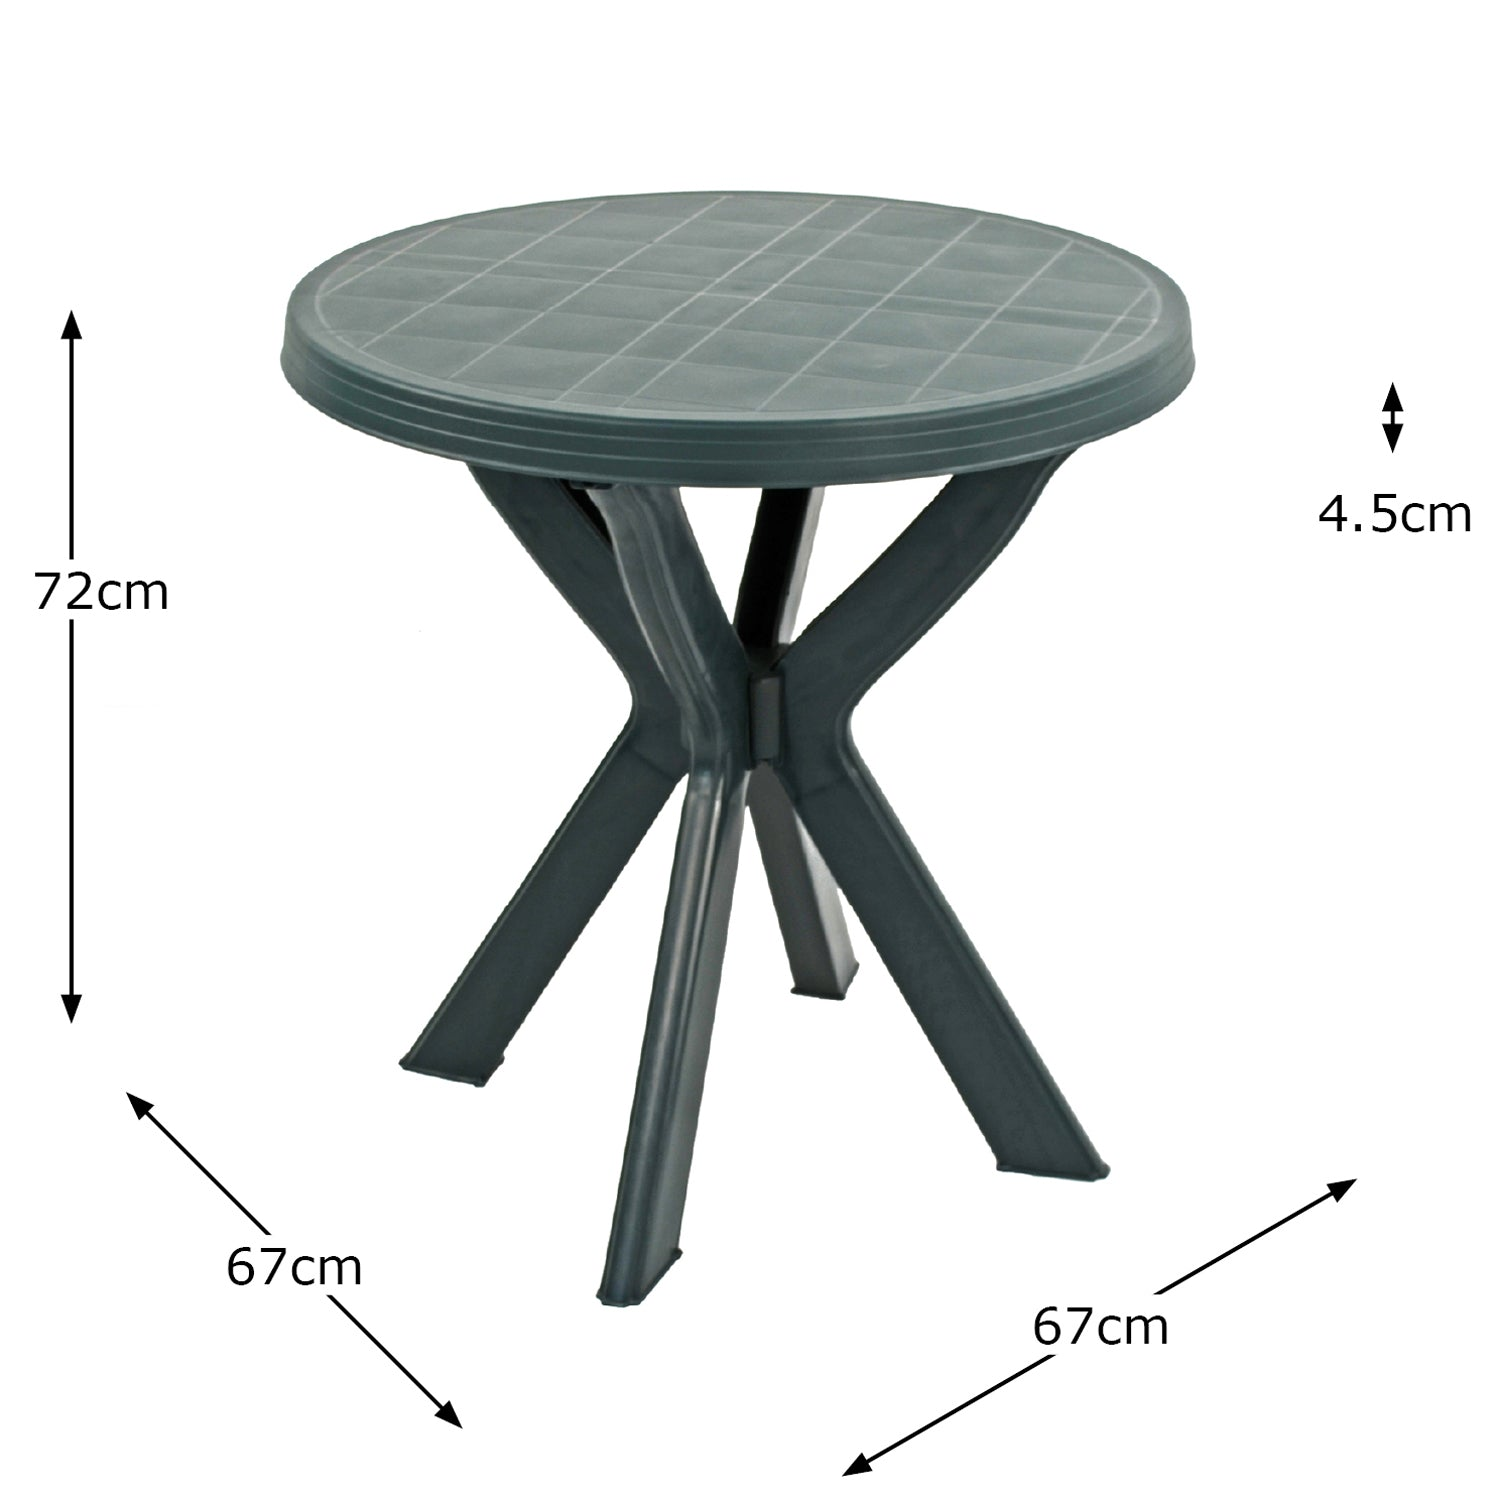 Trabella Tivoli Bistro Table Green - Ruby's Garden Boutique